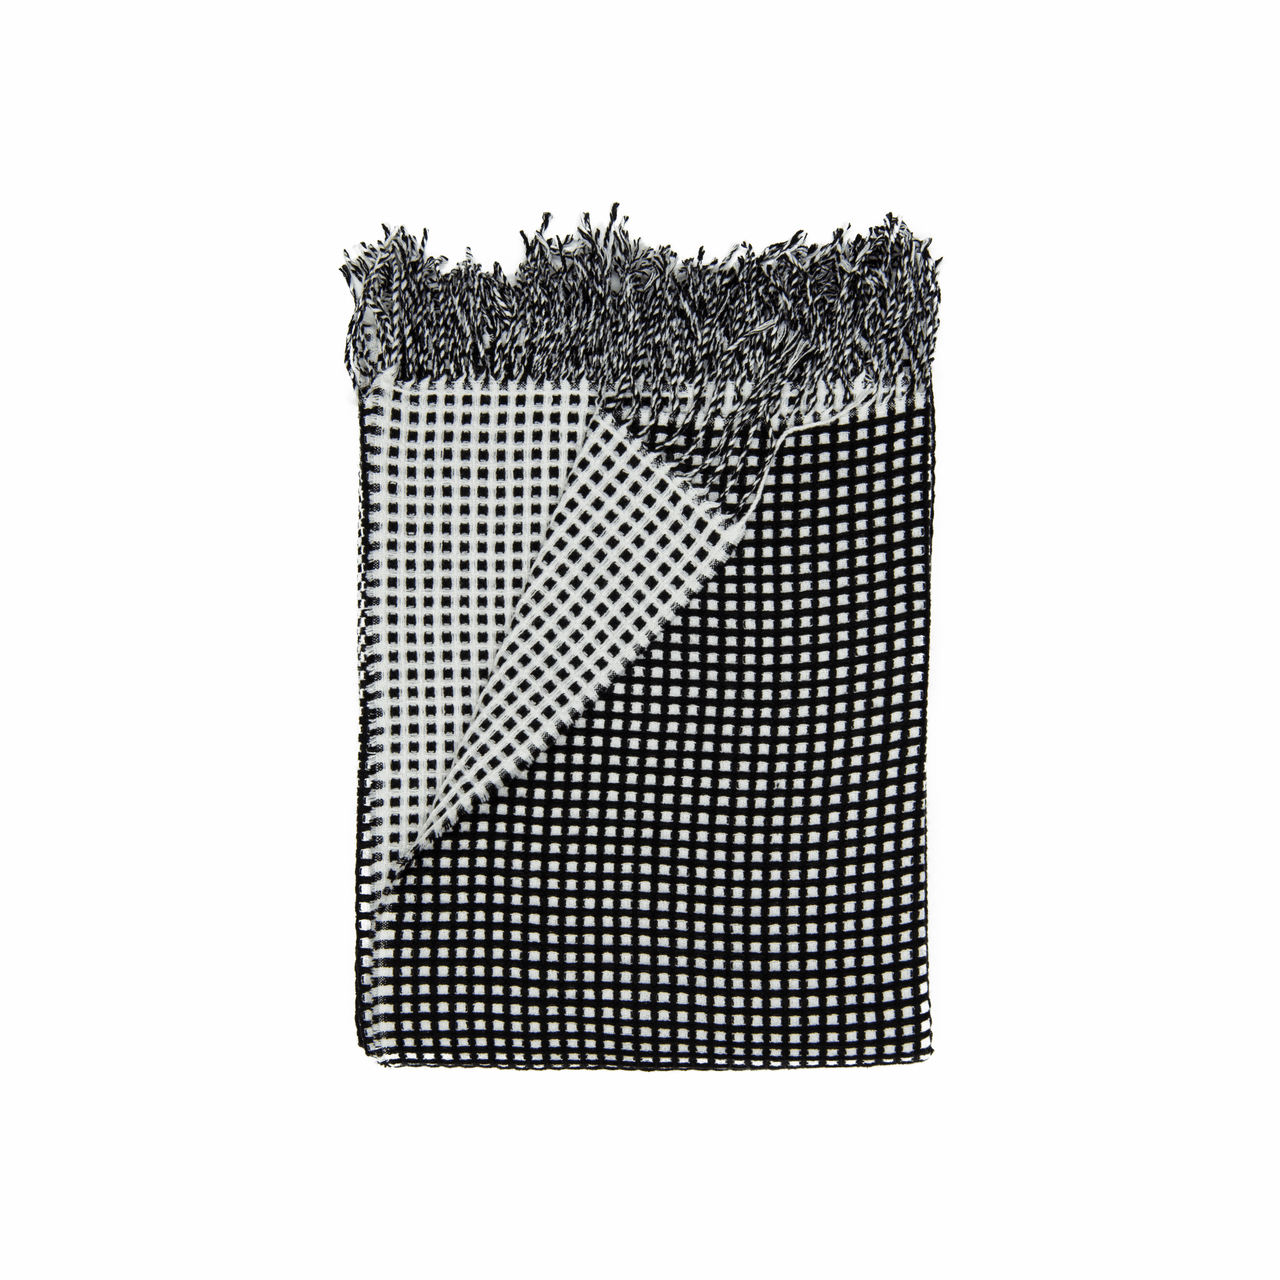 In 2 Linen Waffle Knitted Throw Rug Natural Black